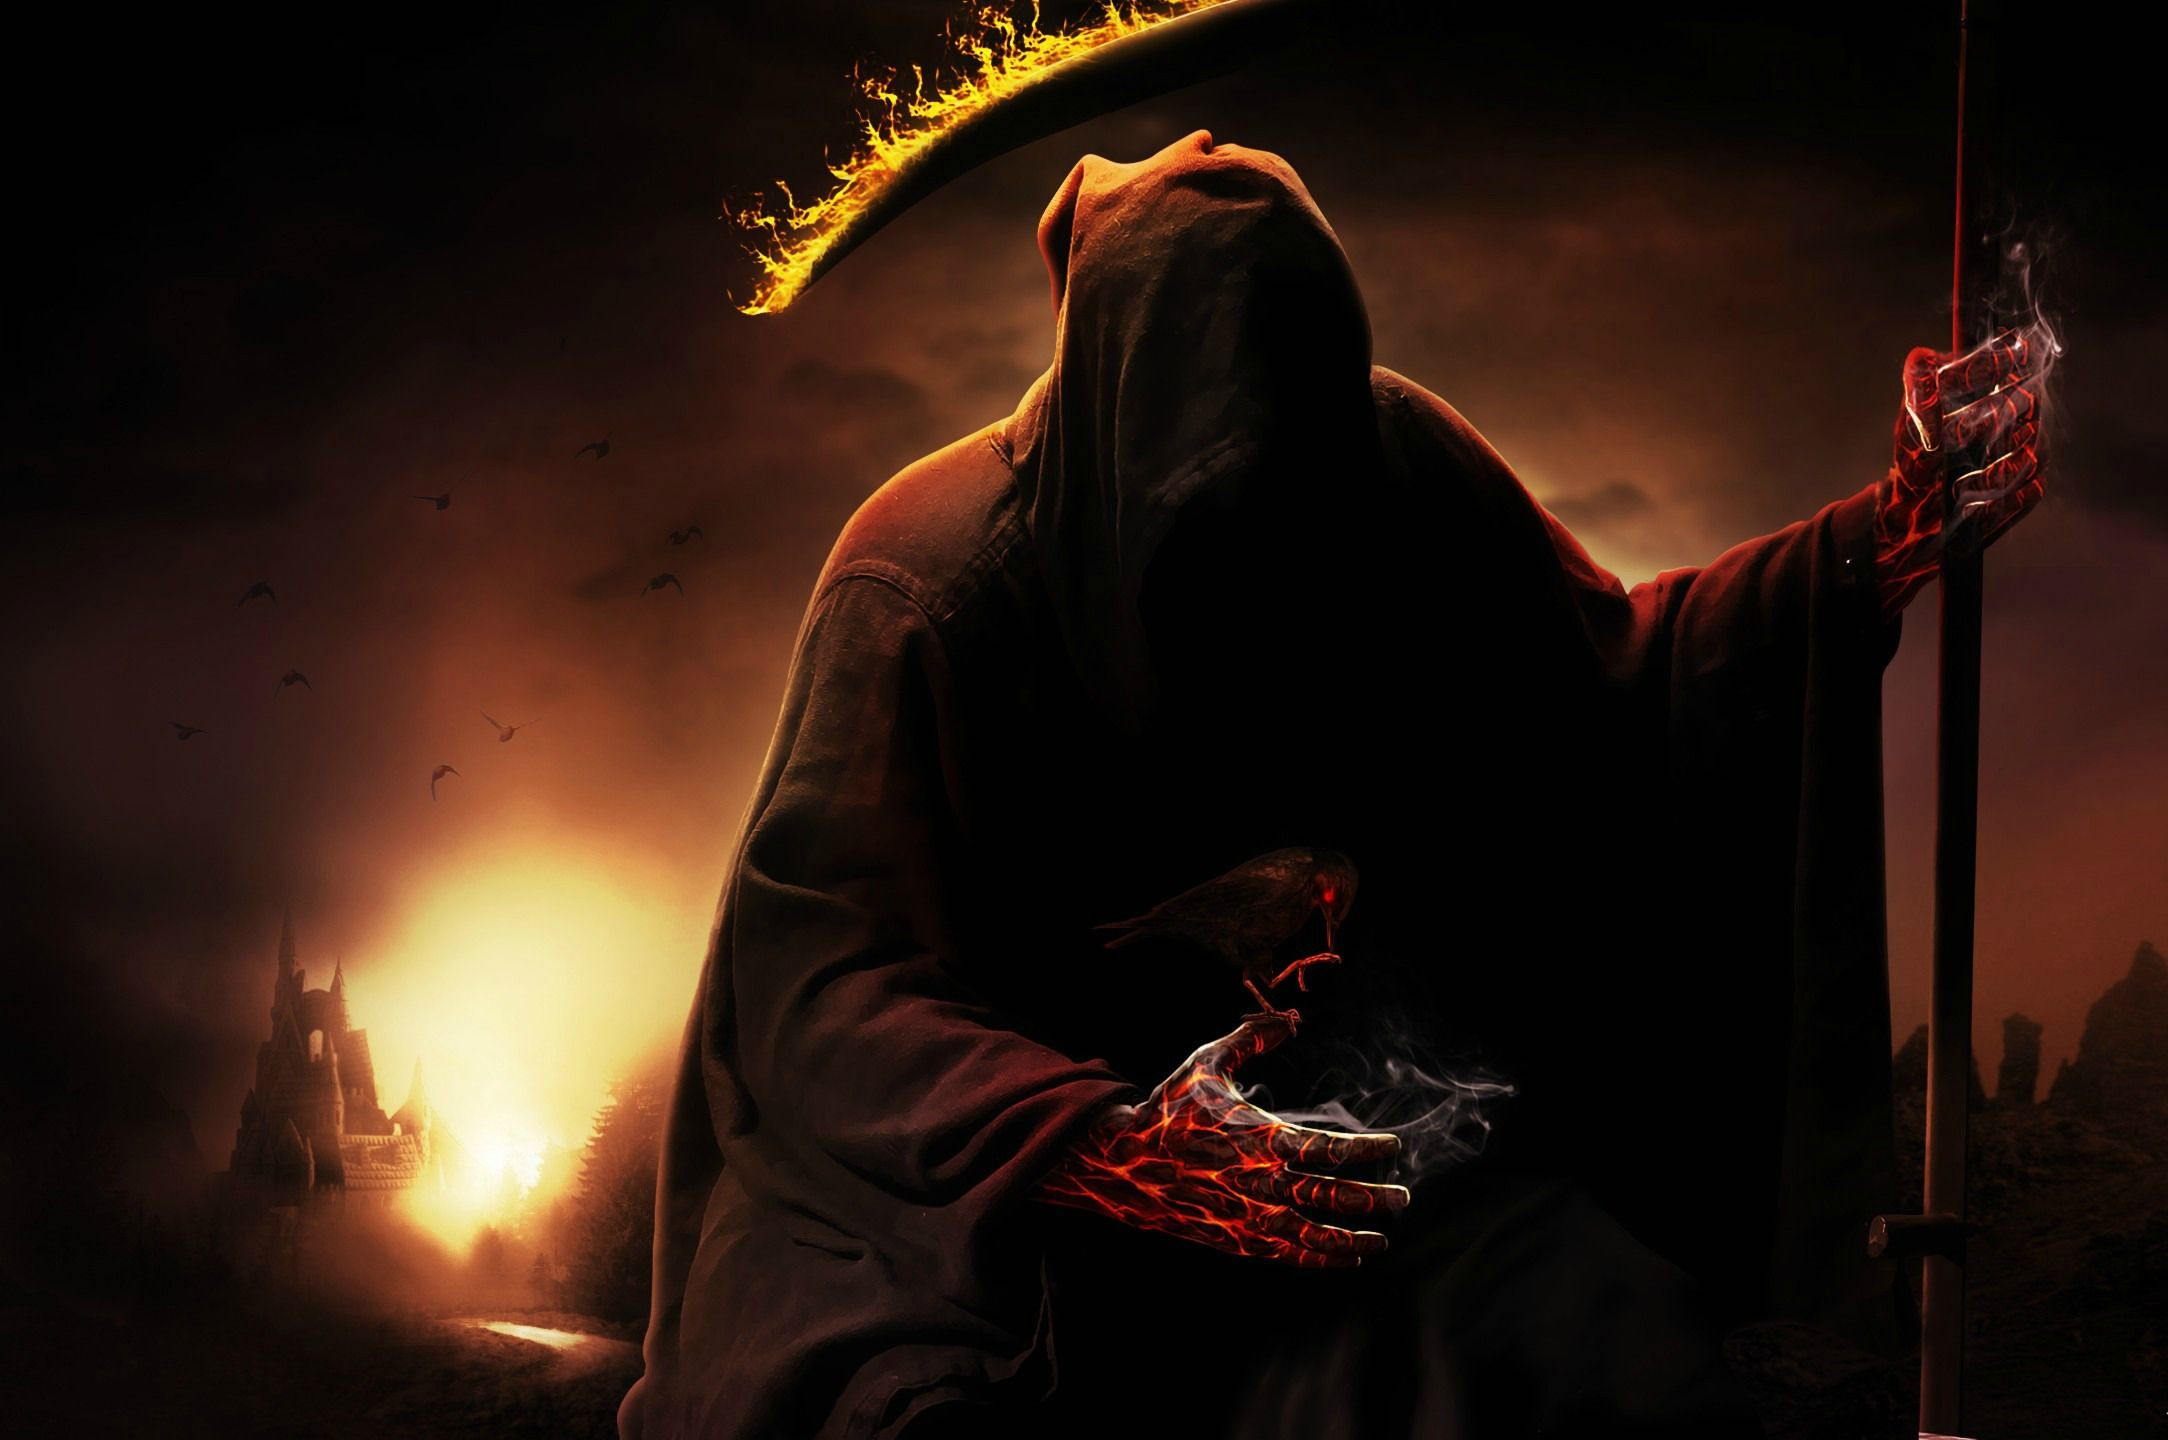 Grim Reaper Wallpaper Hd Grim Reaper Grim Reaper Art Angel Of